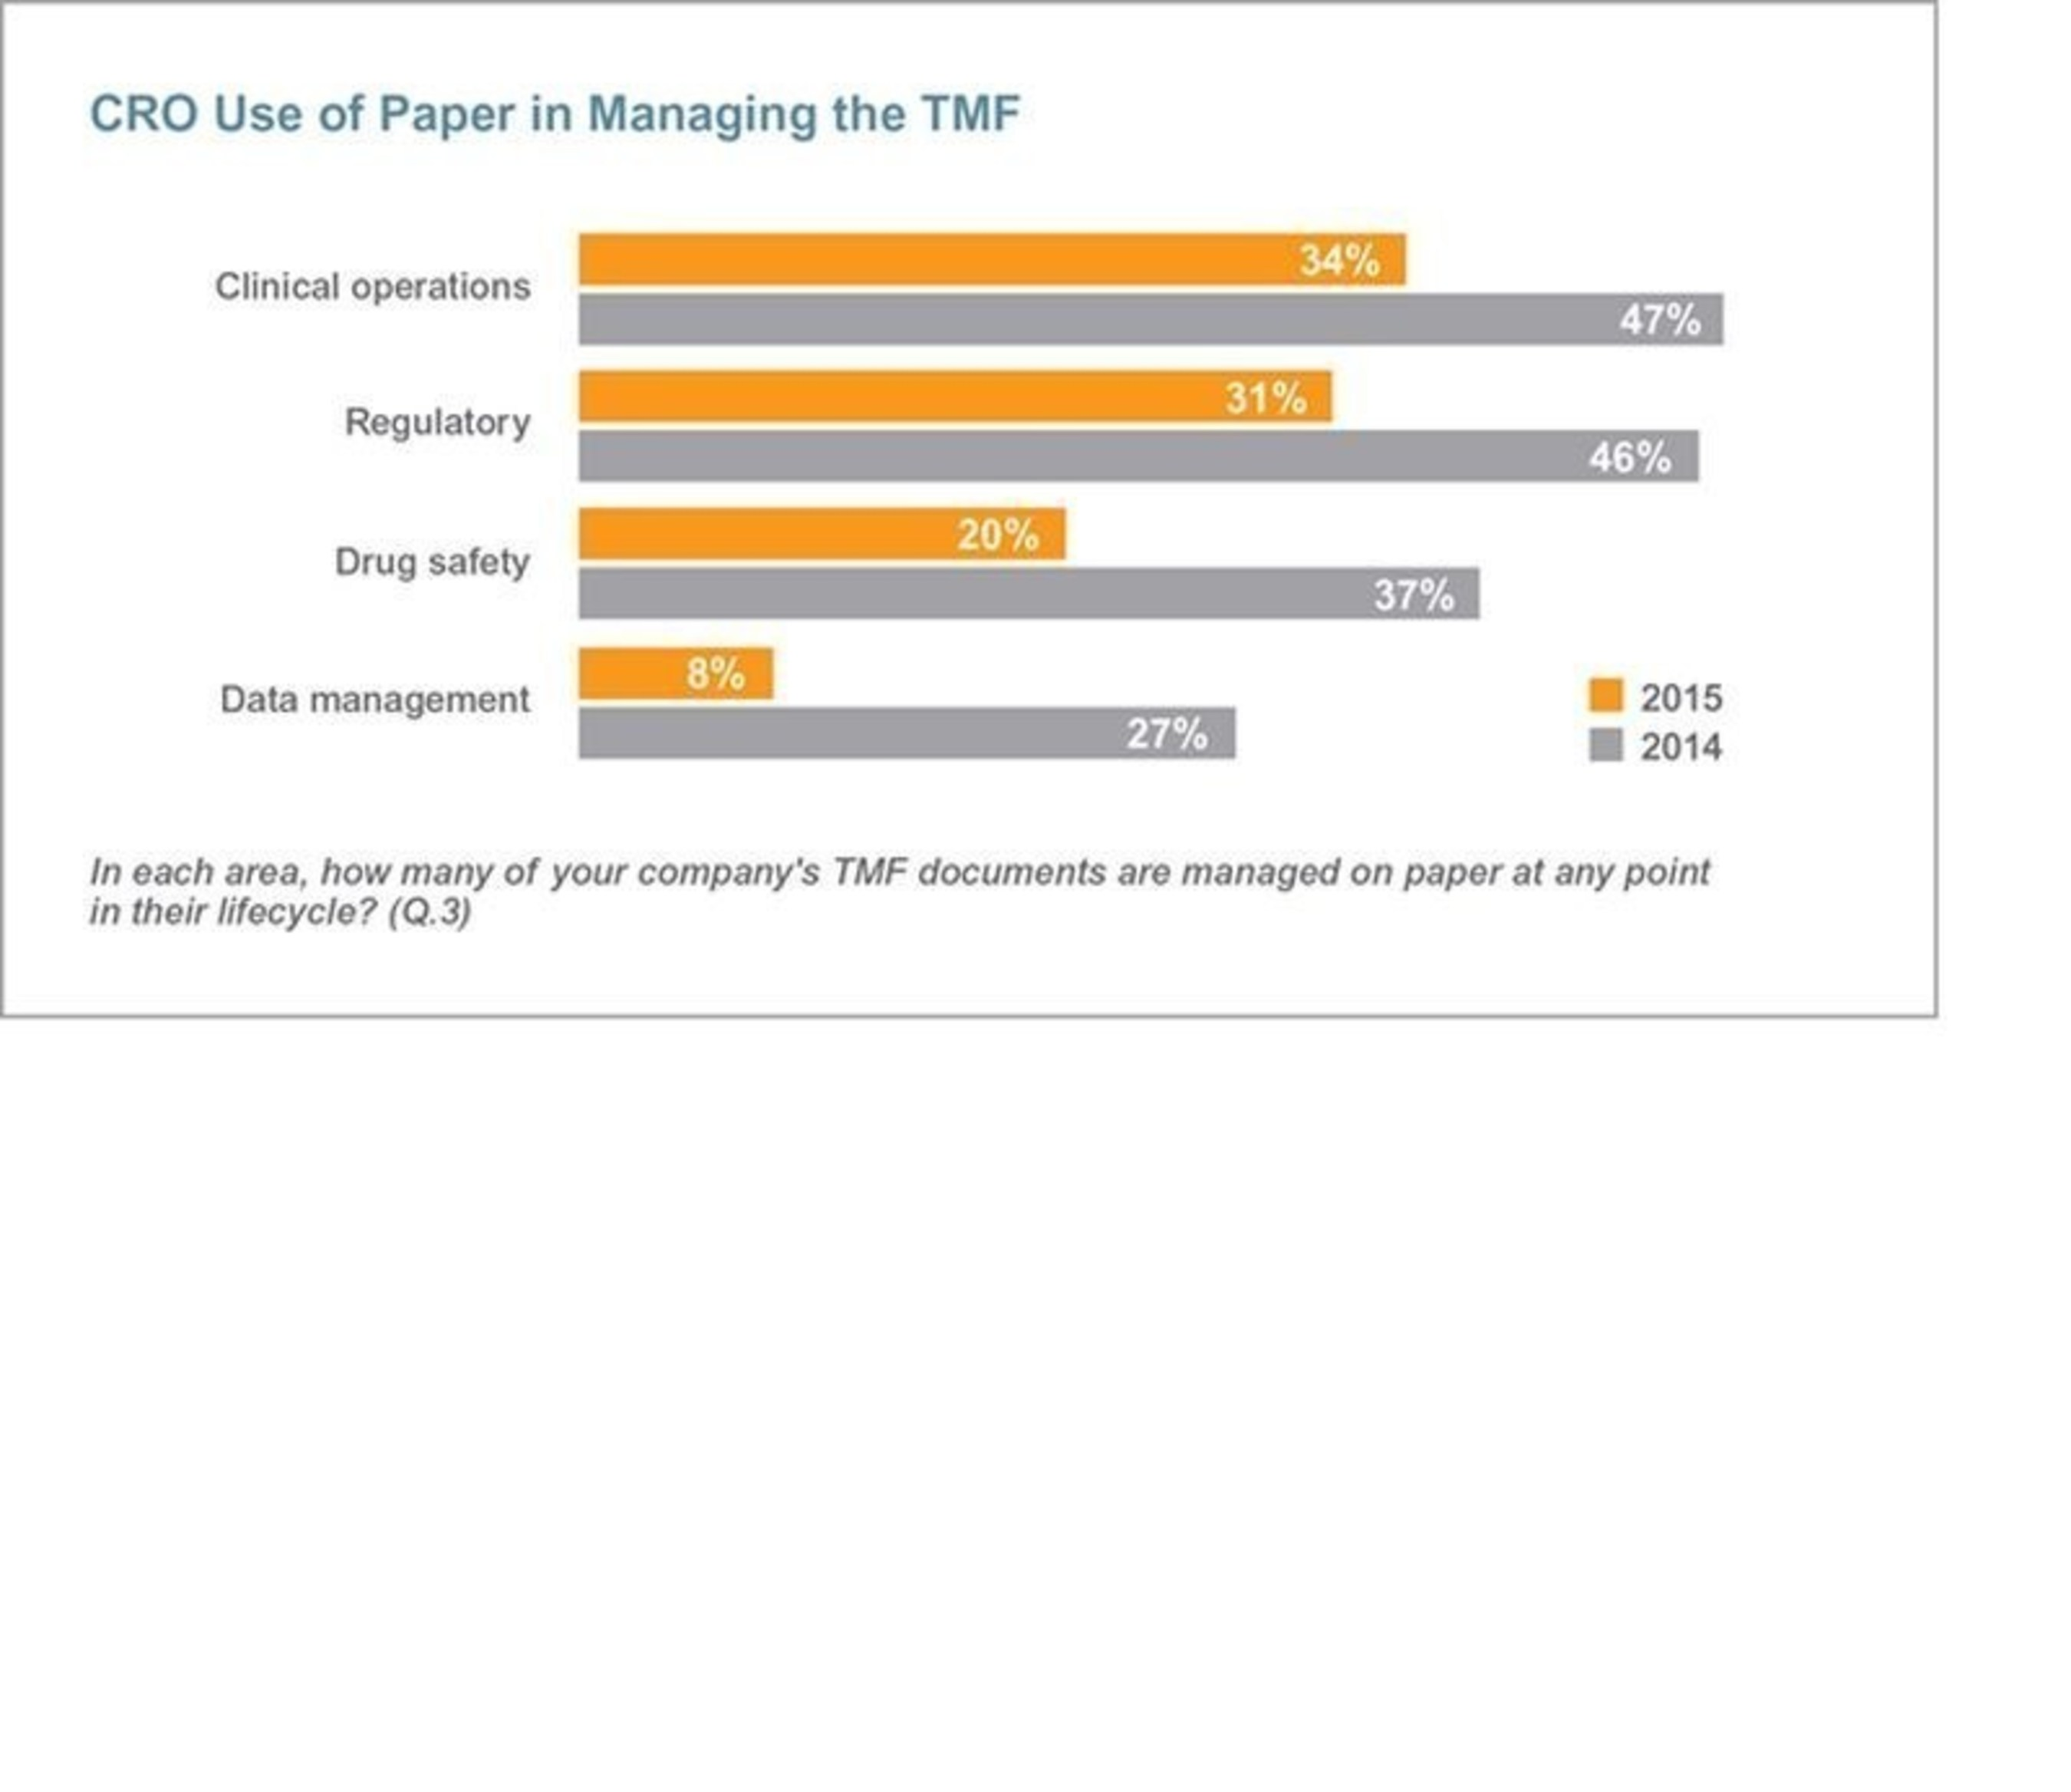 CRO Use of Paper in Managing the TMF (PRNewsFoto/Veeva Systems)